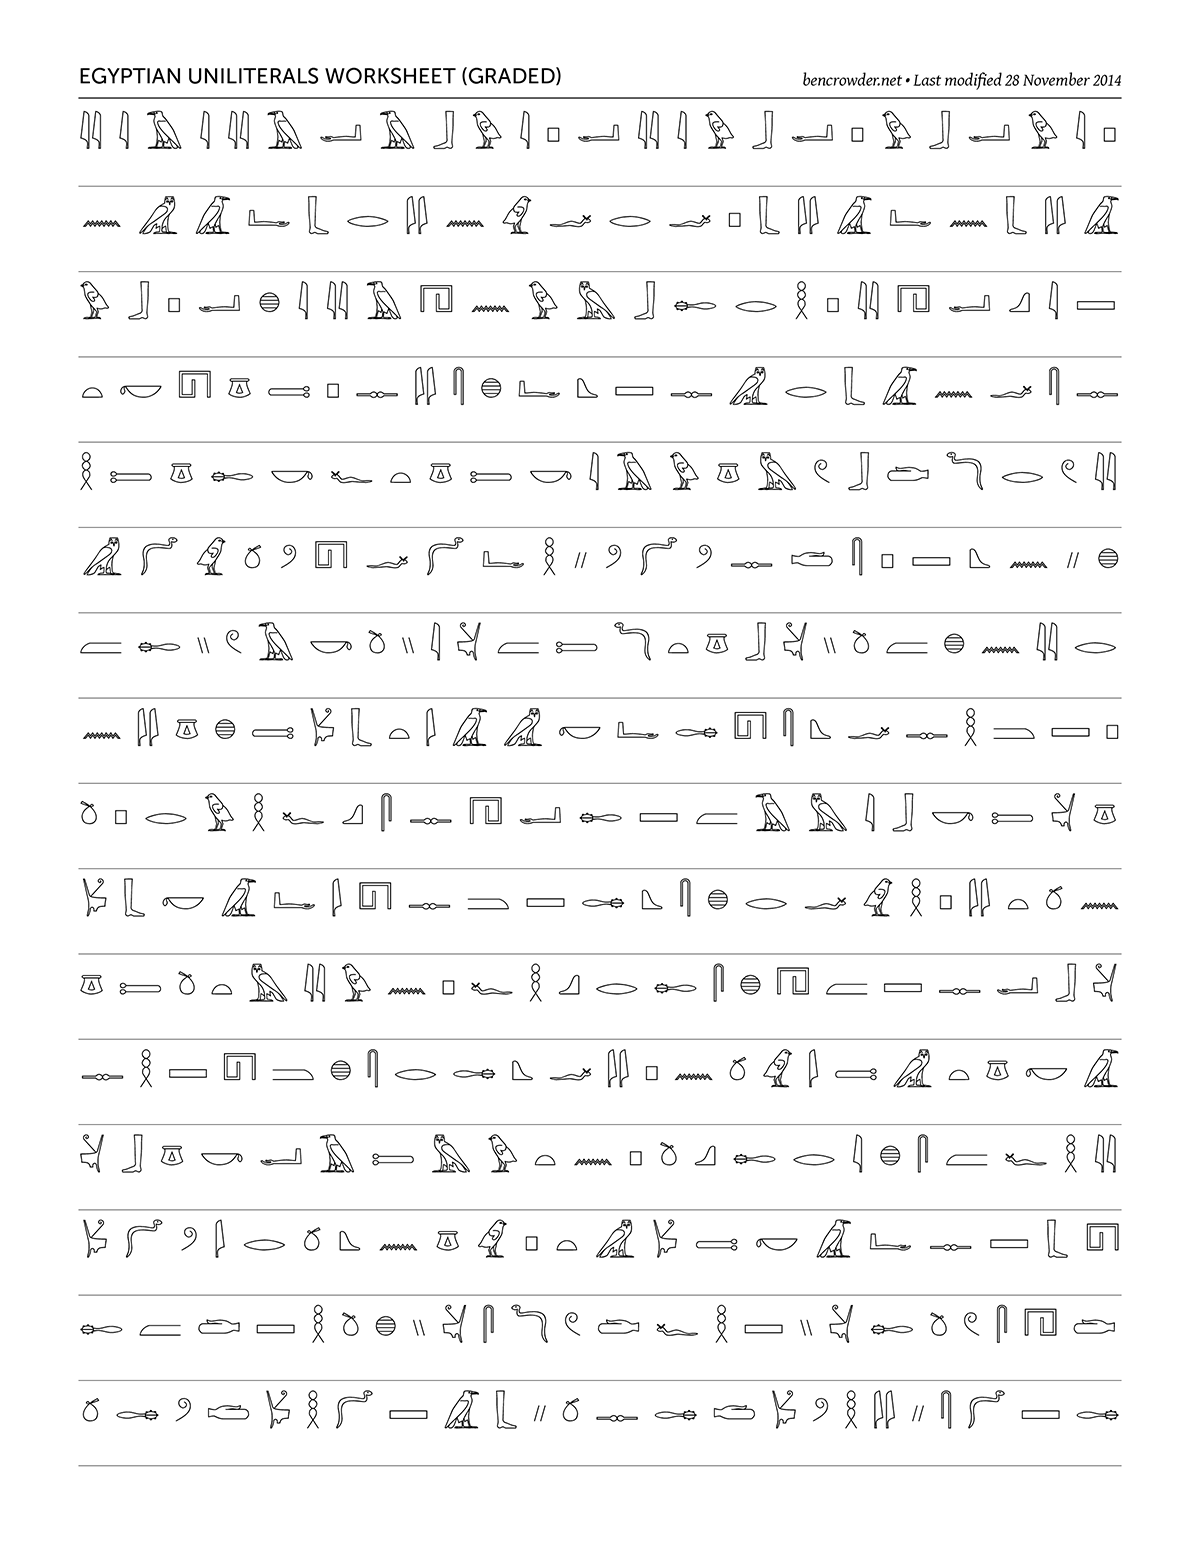 EgyptianUniliteralsWorksheet-Graded.png